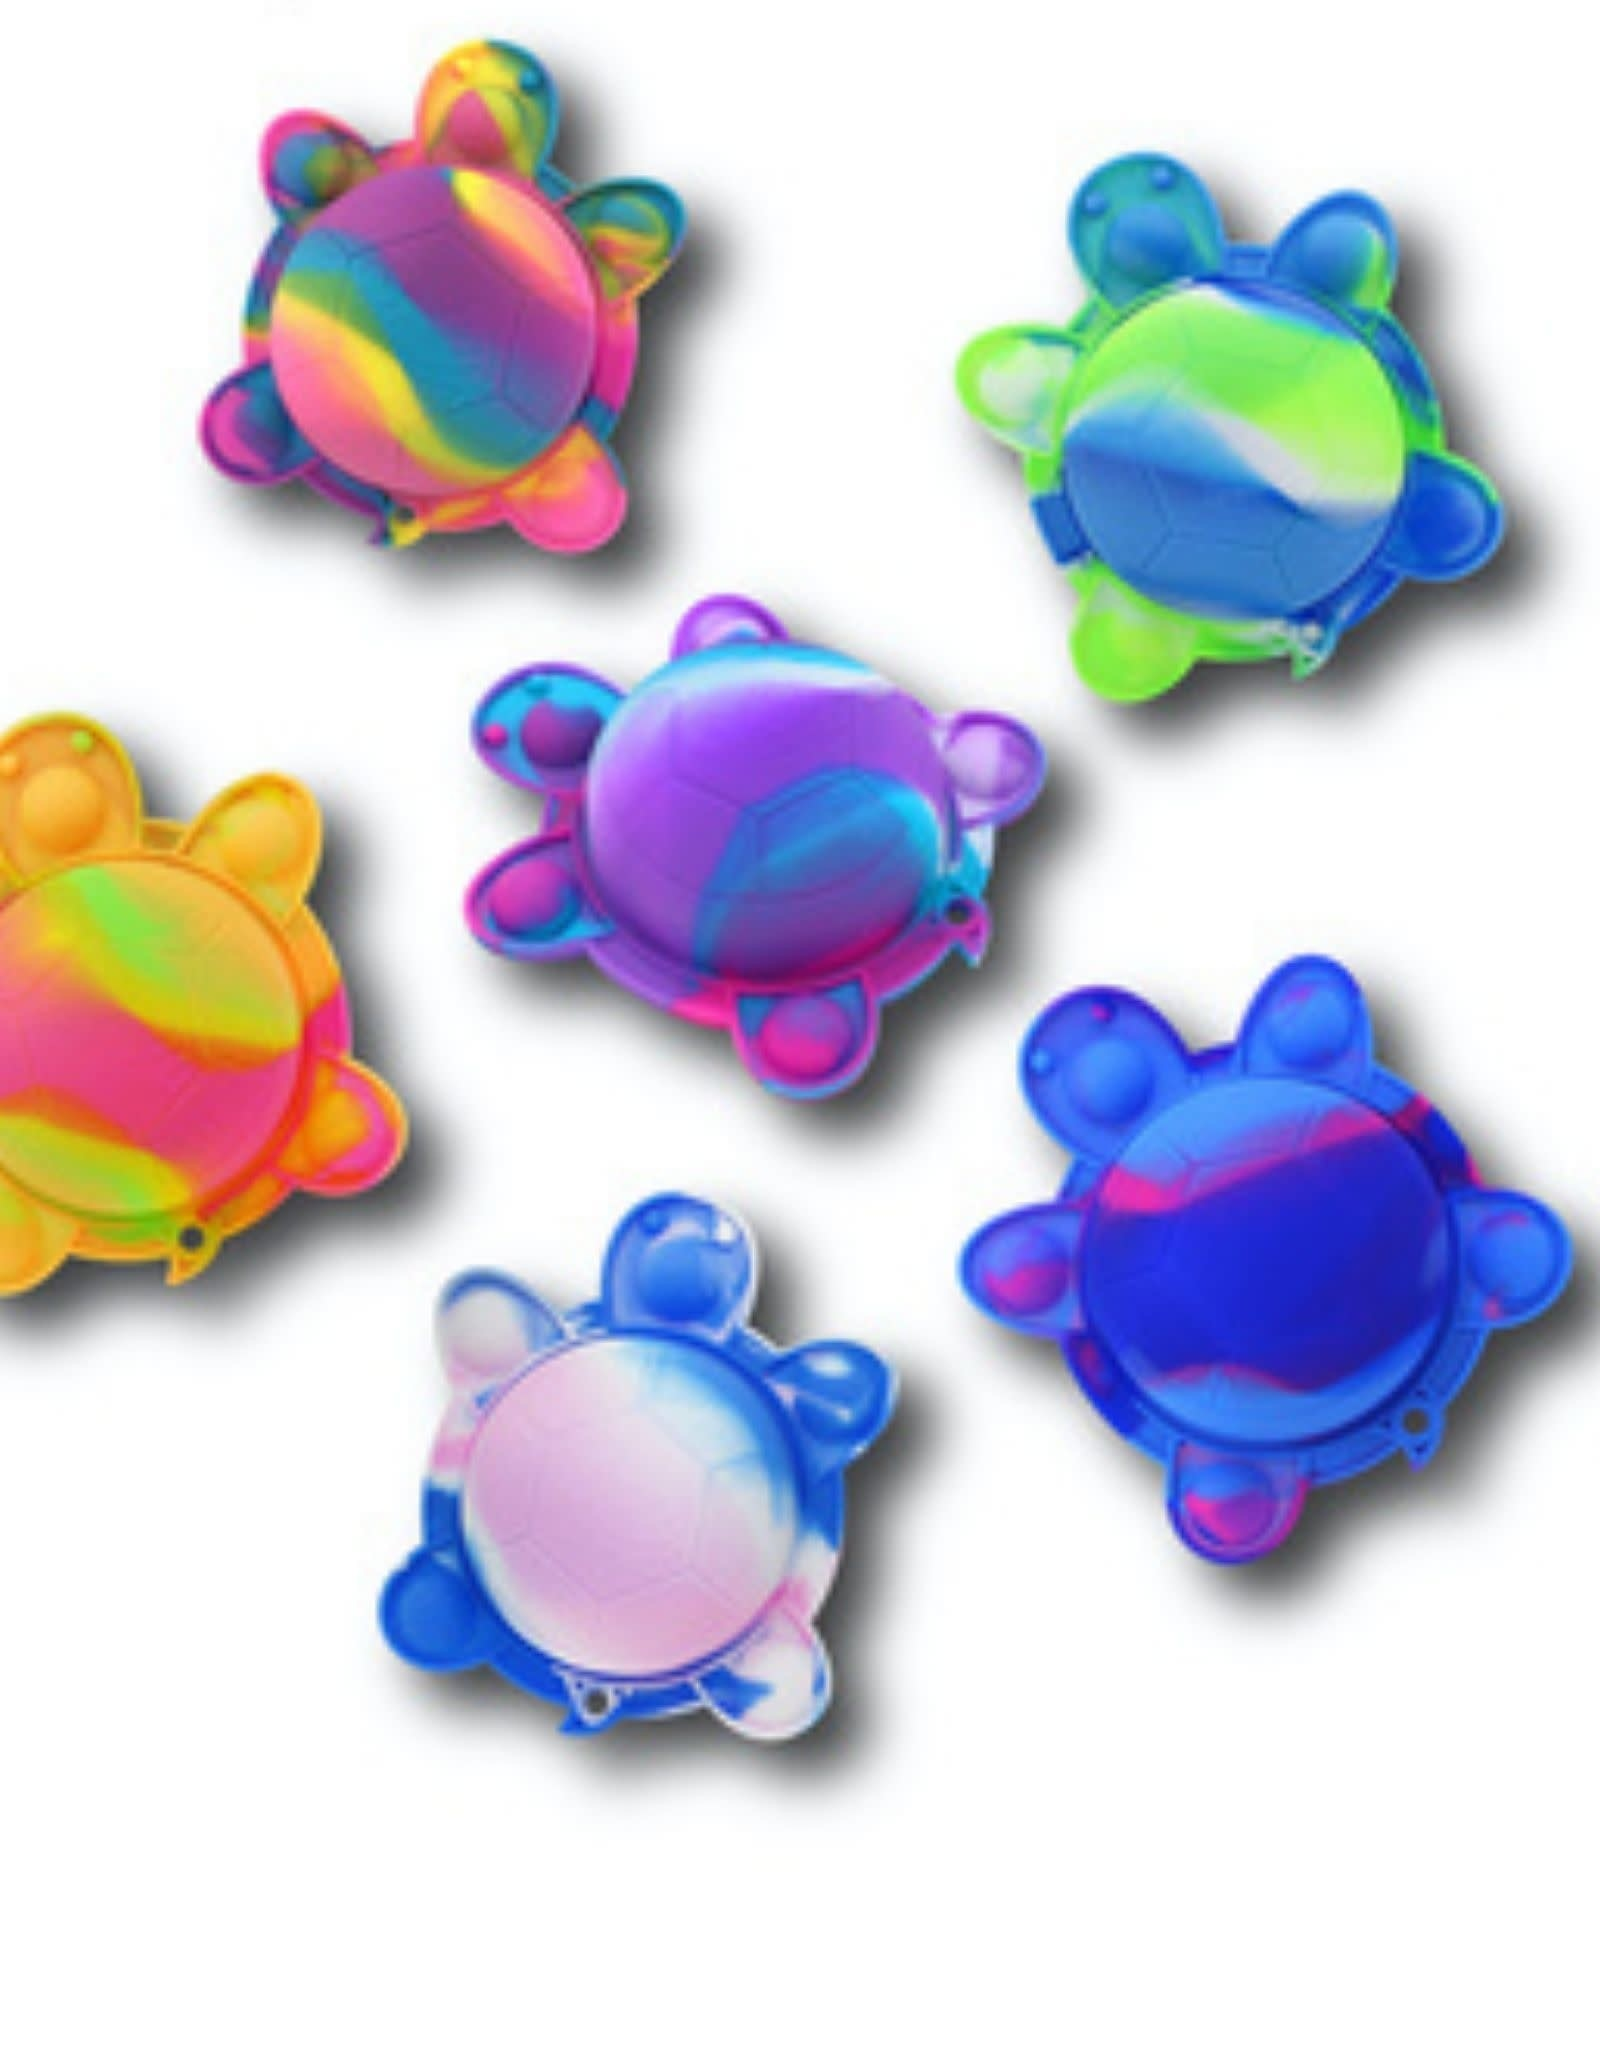 Crazy Snaps Turtle Fidget Popping Toy